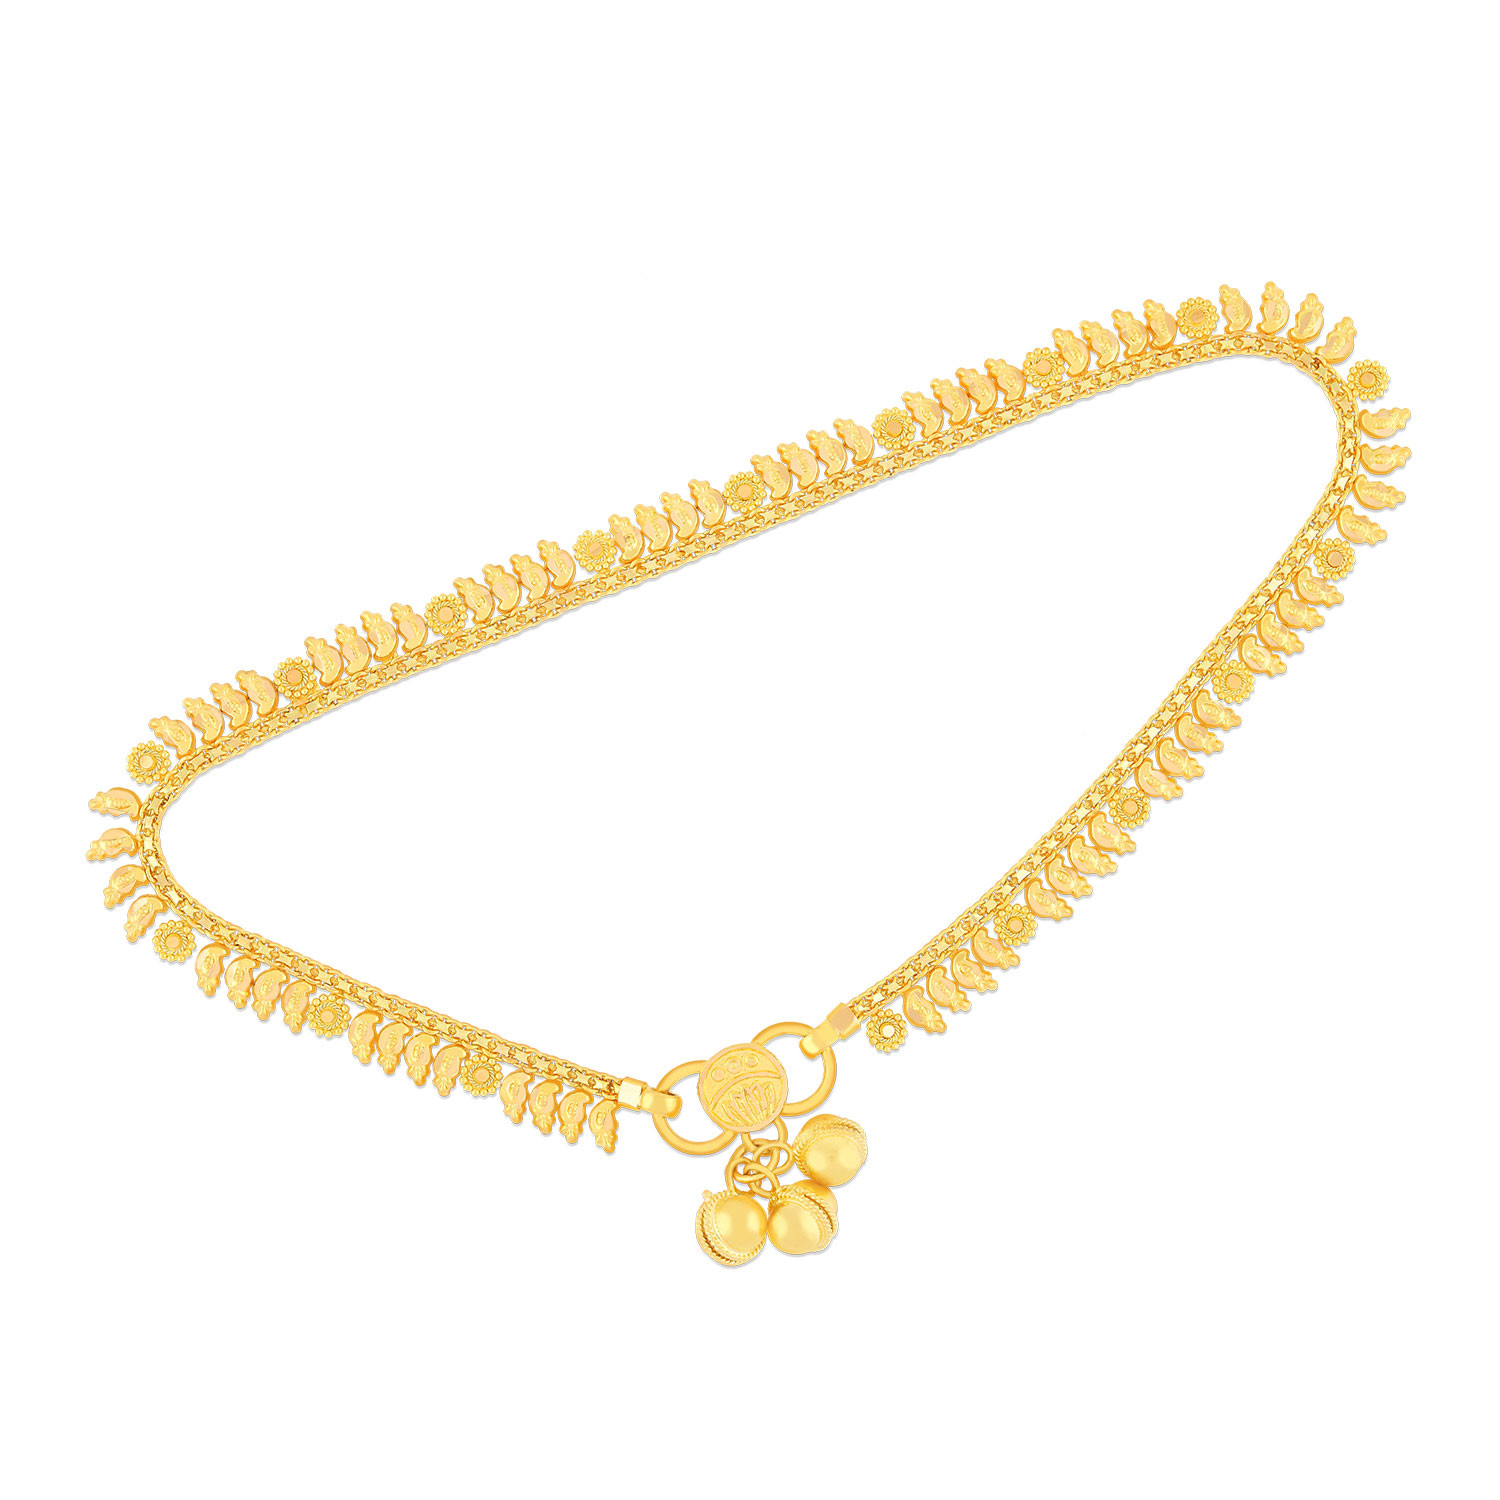 store prices anklet india ghungroo online plated at buy memoir snake jewellery amazon dp women design in chain gold flat for low